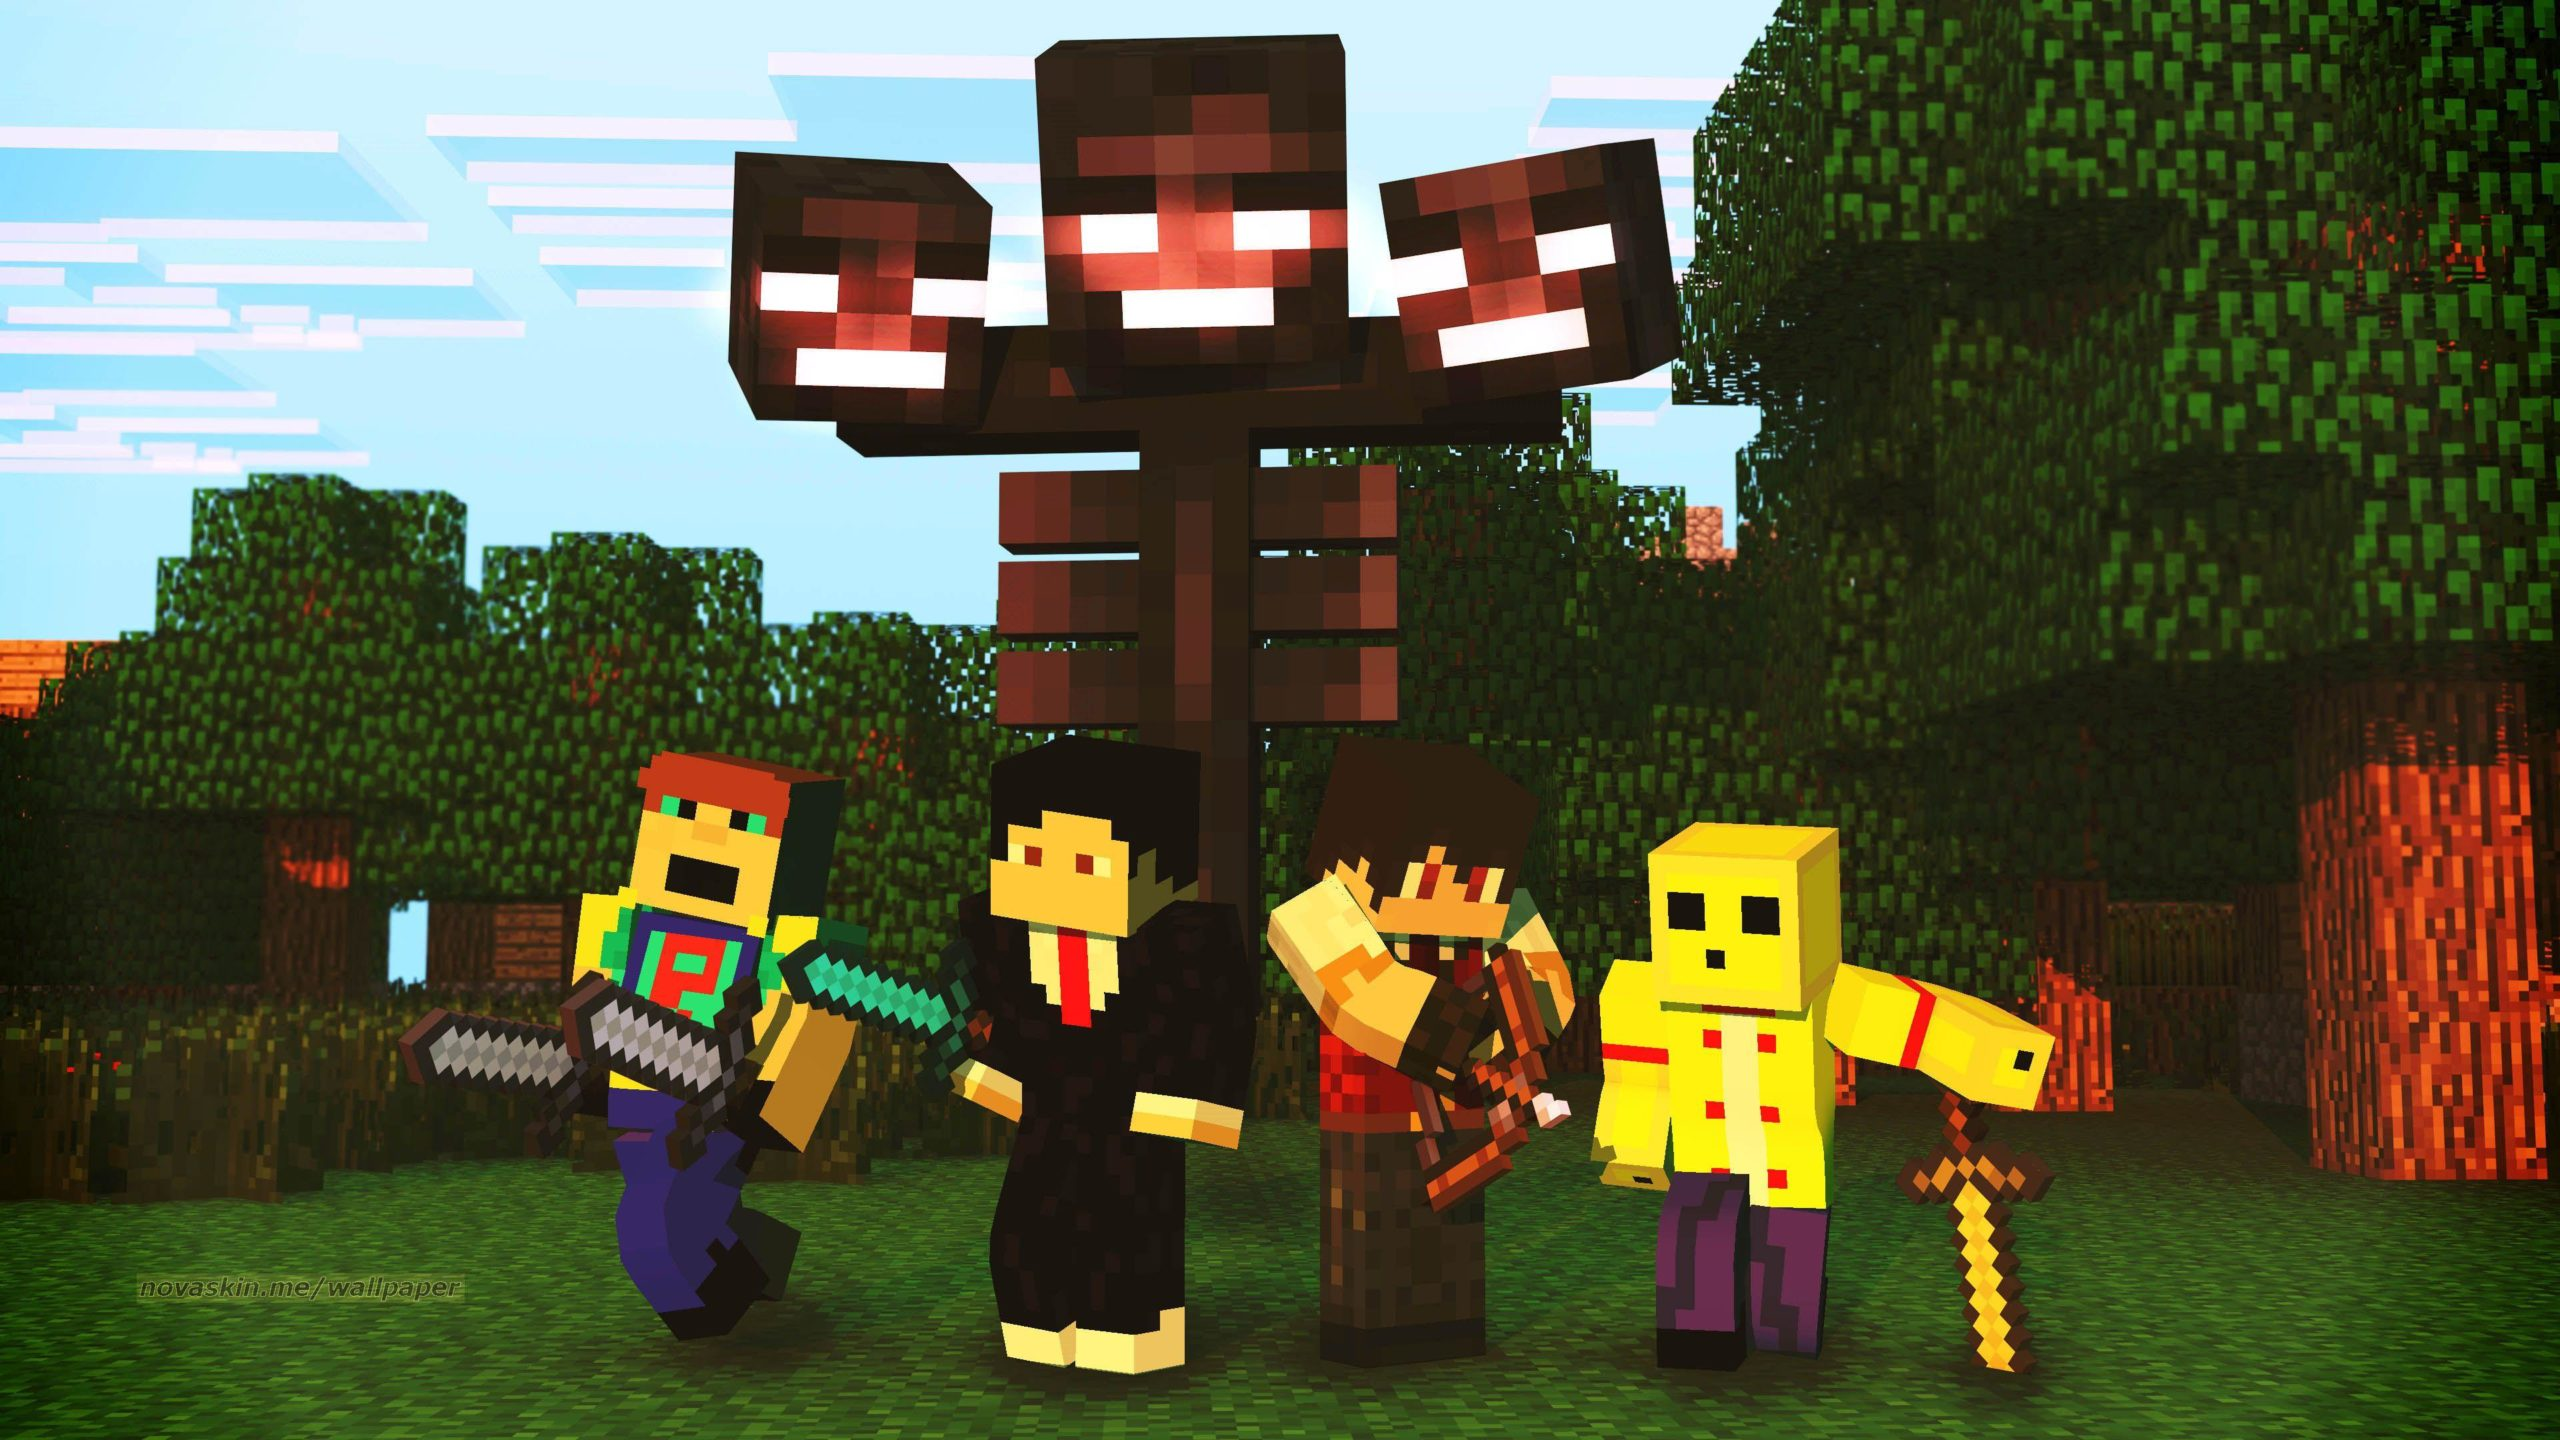 Fondo de MiniCraft HD